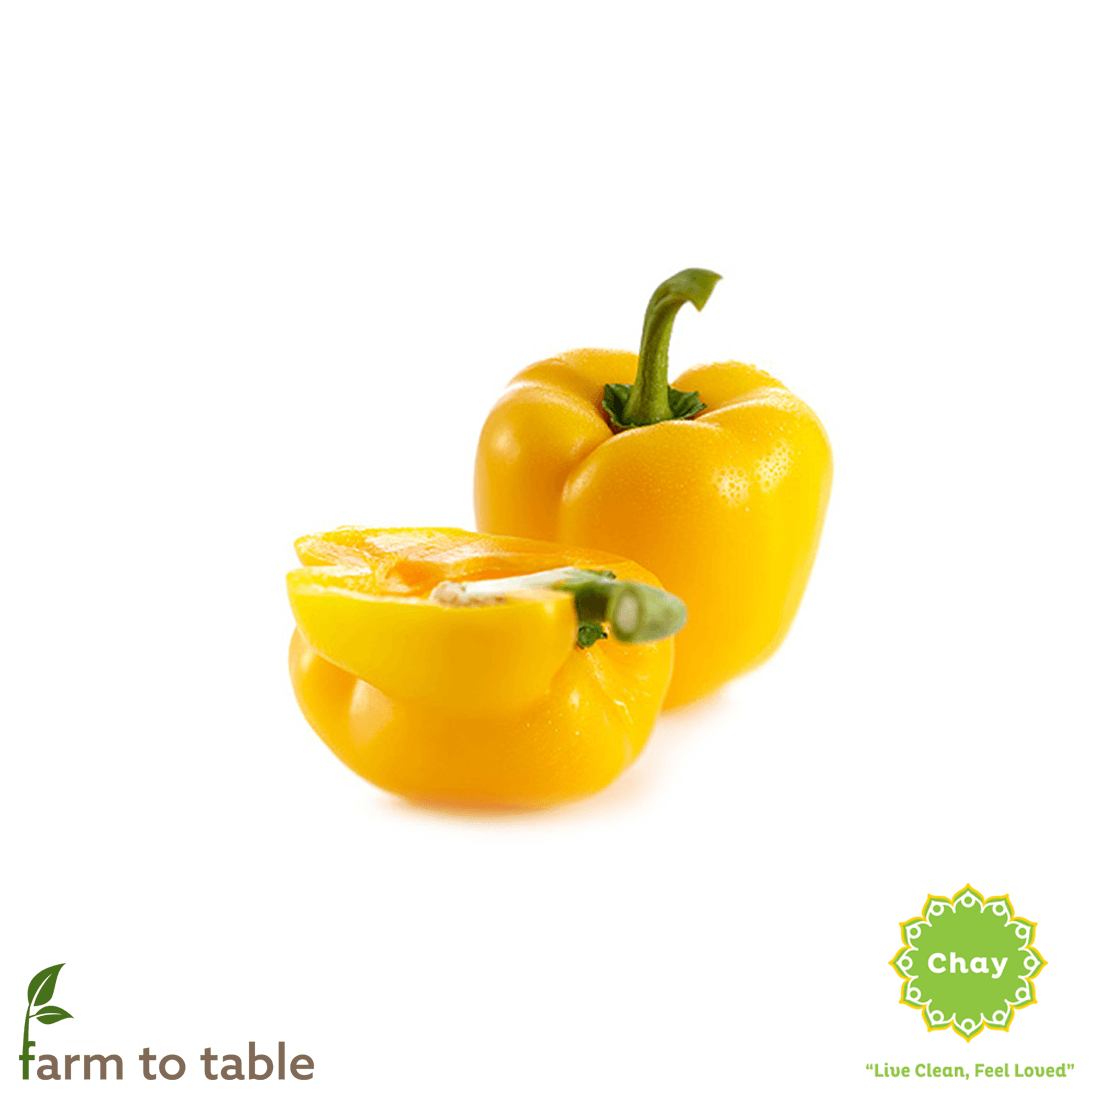 Yellow bell pepper 0,2 - 0,3 kg en House of Chay